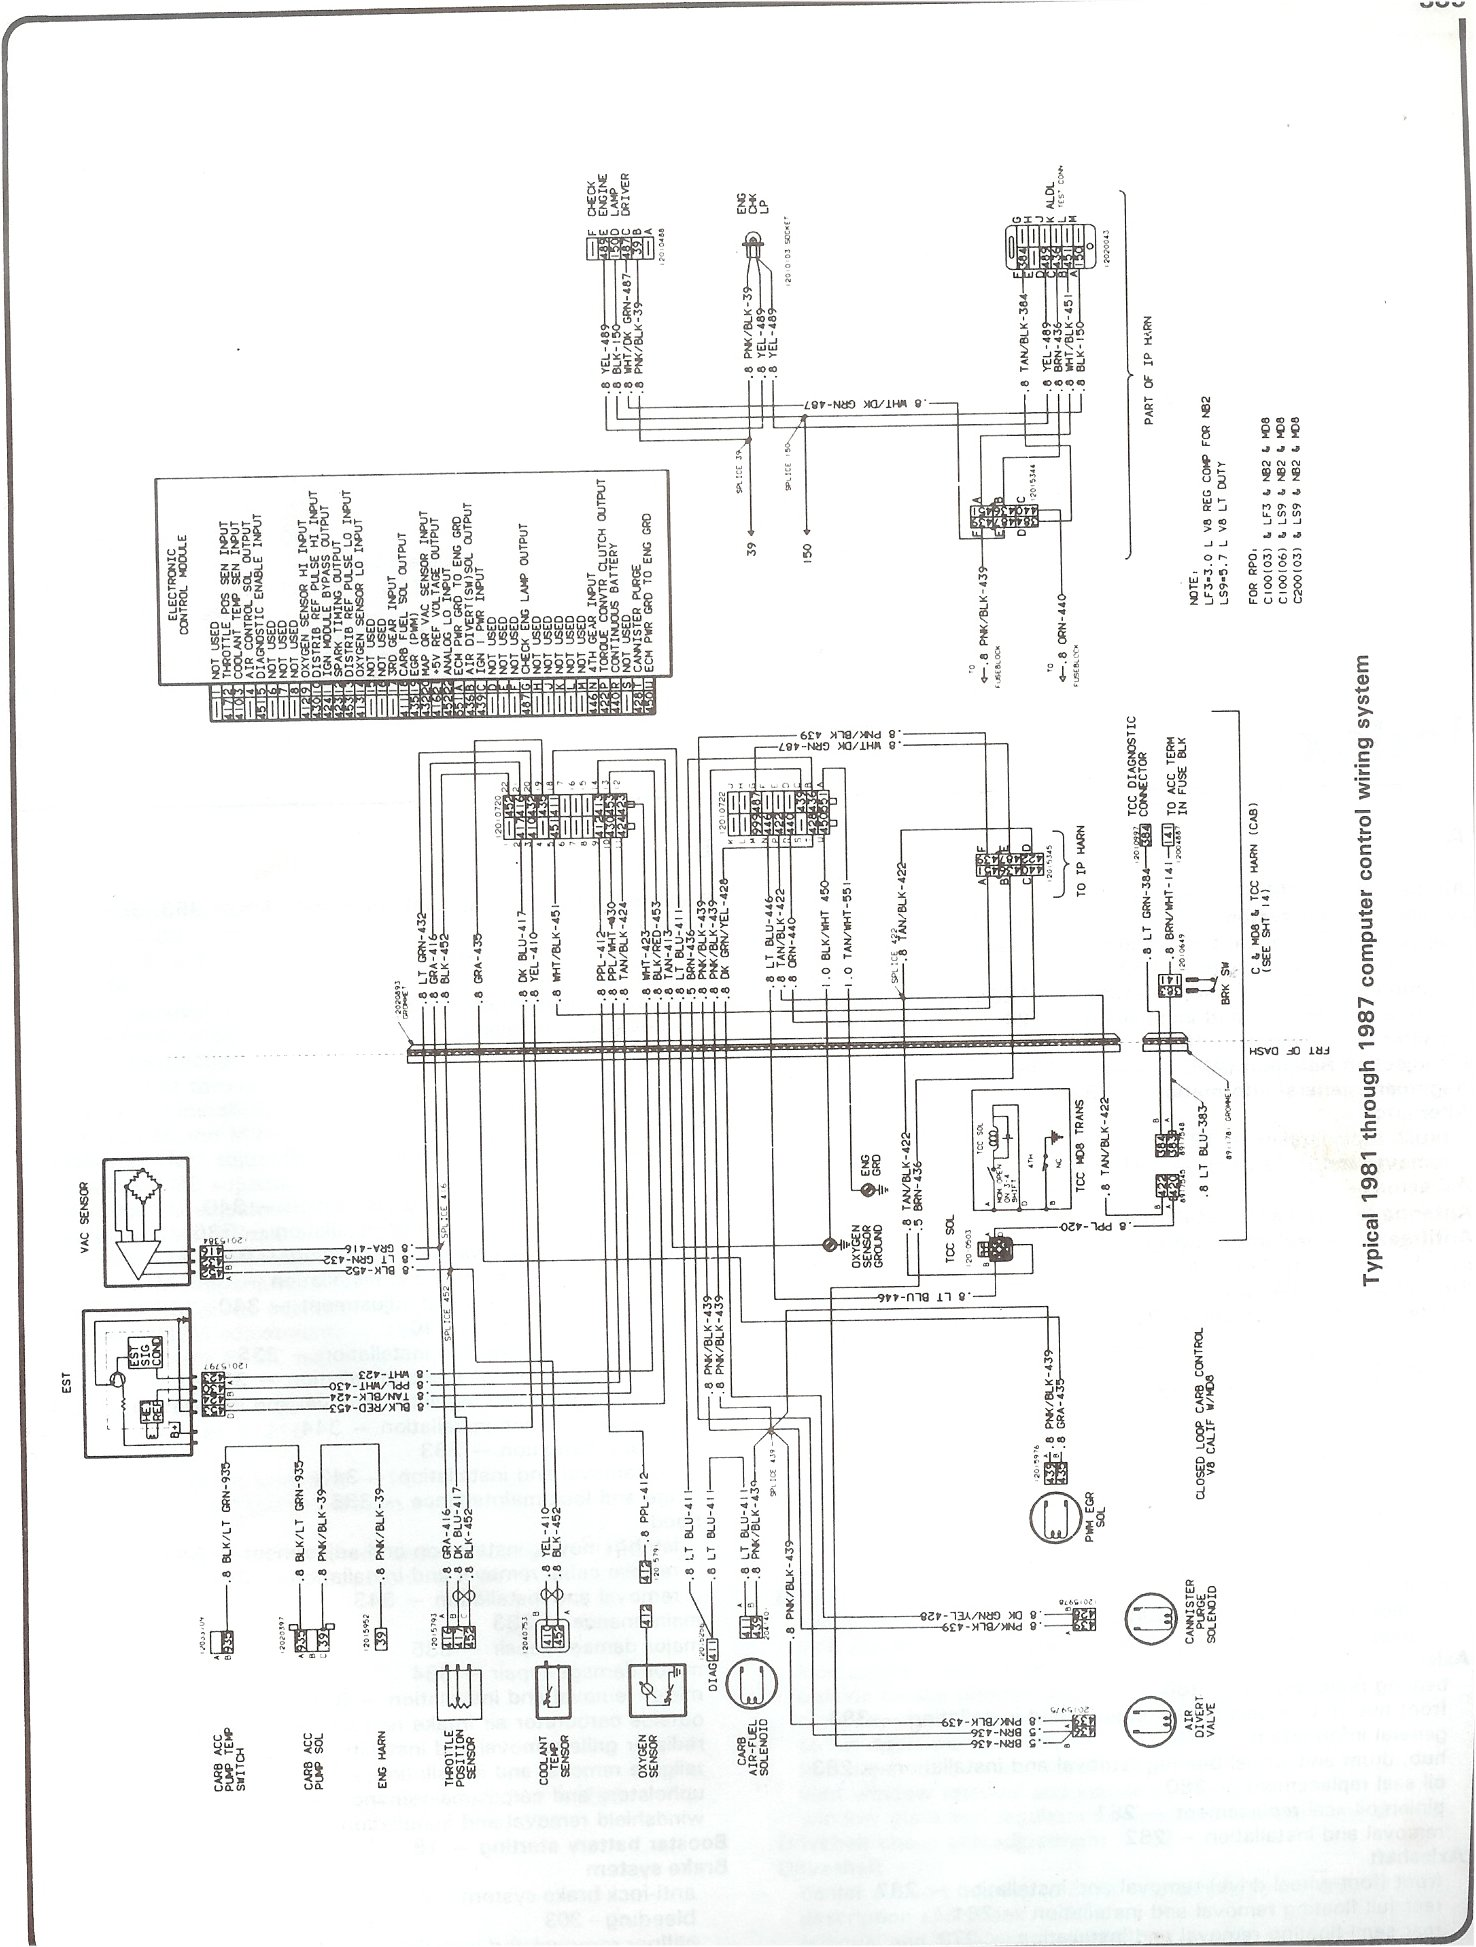 Dome Light Wiring Diagram 1979 Blazer Mastering 67 Chevelle Complete 73 87 Diagrams Rh Forum 87chevytrucks Com Jk 1956